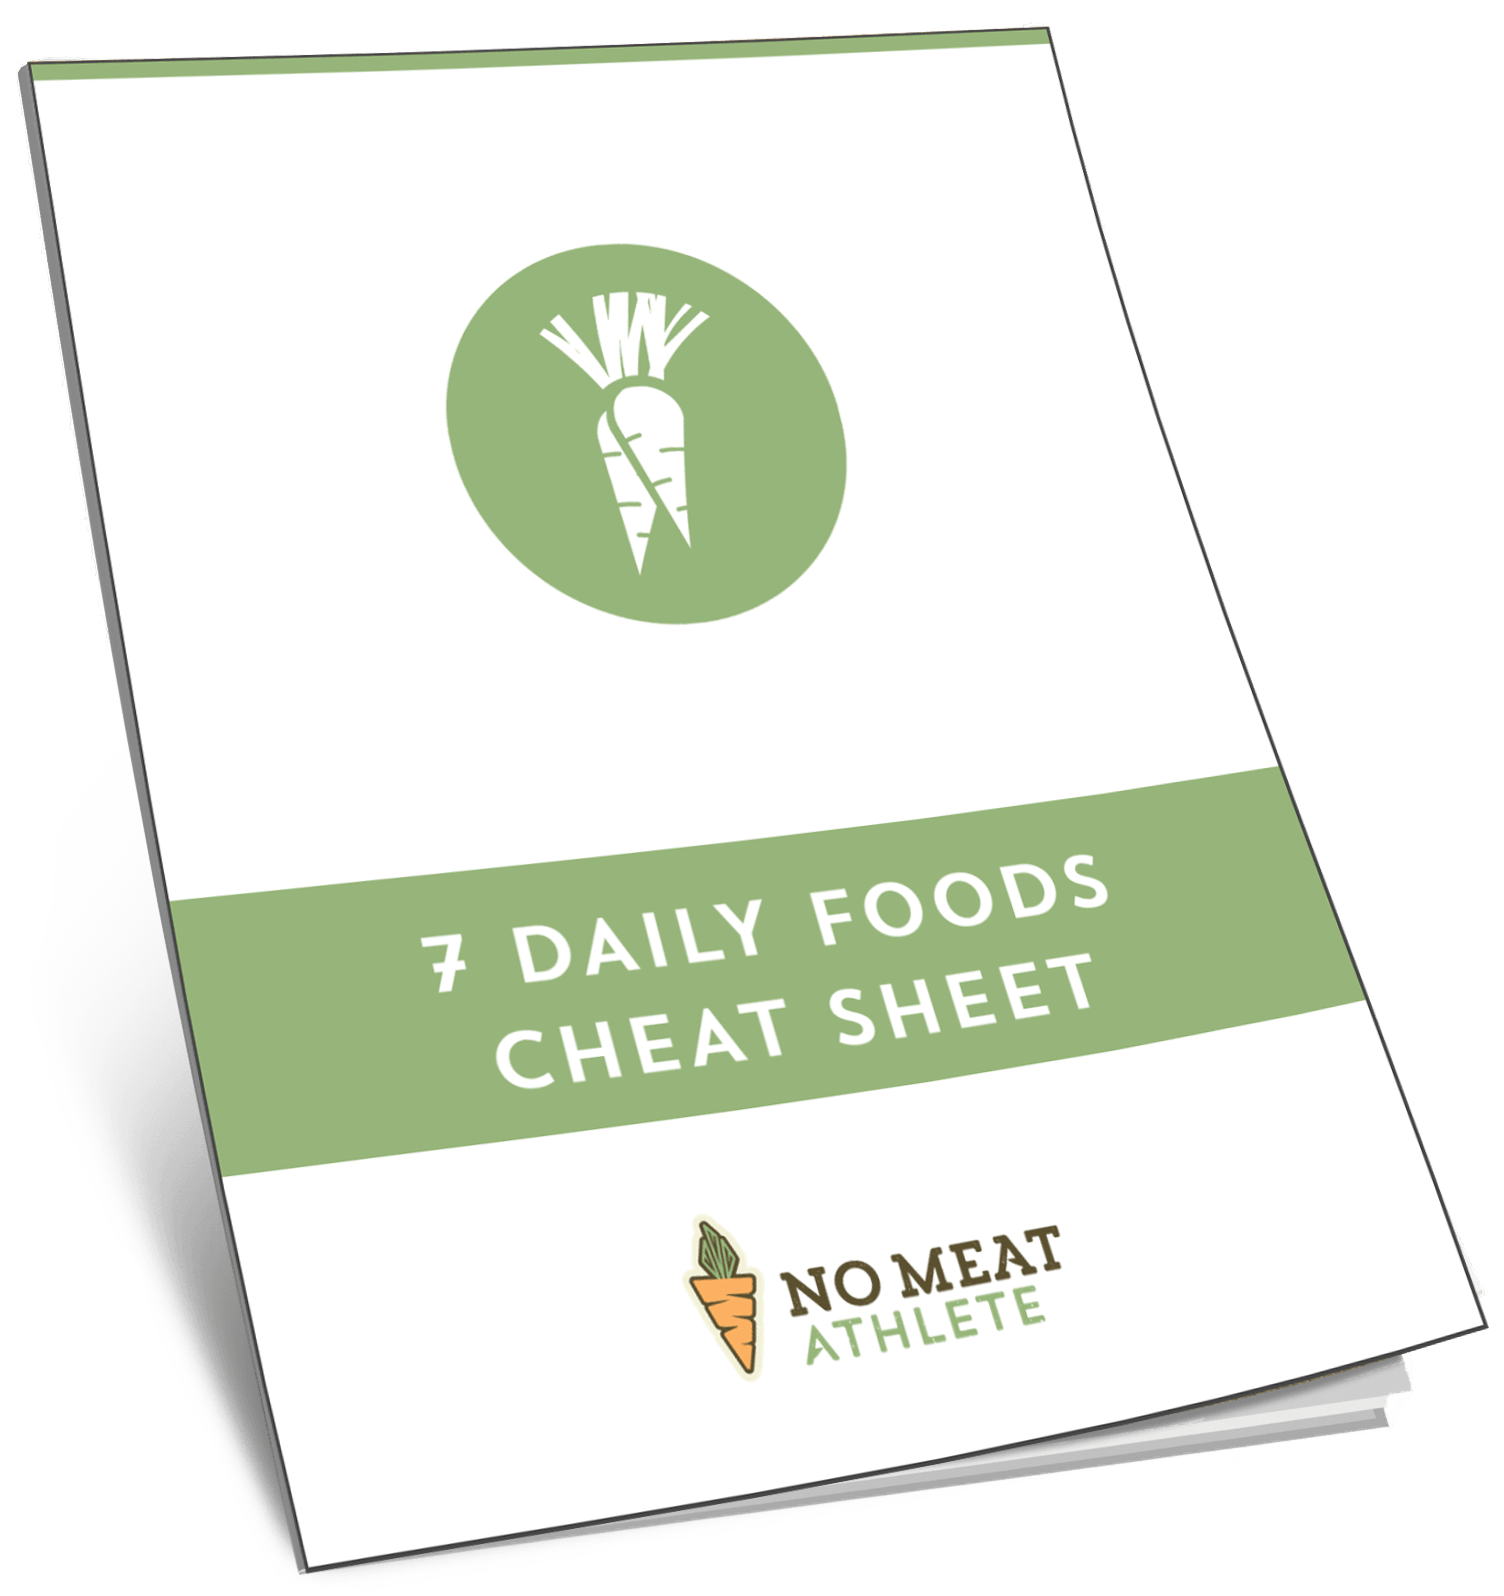 Health Fitness Amp Meal Plans